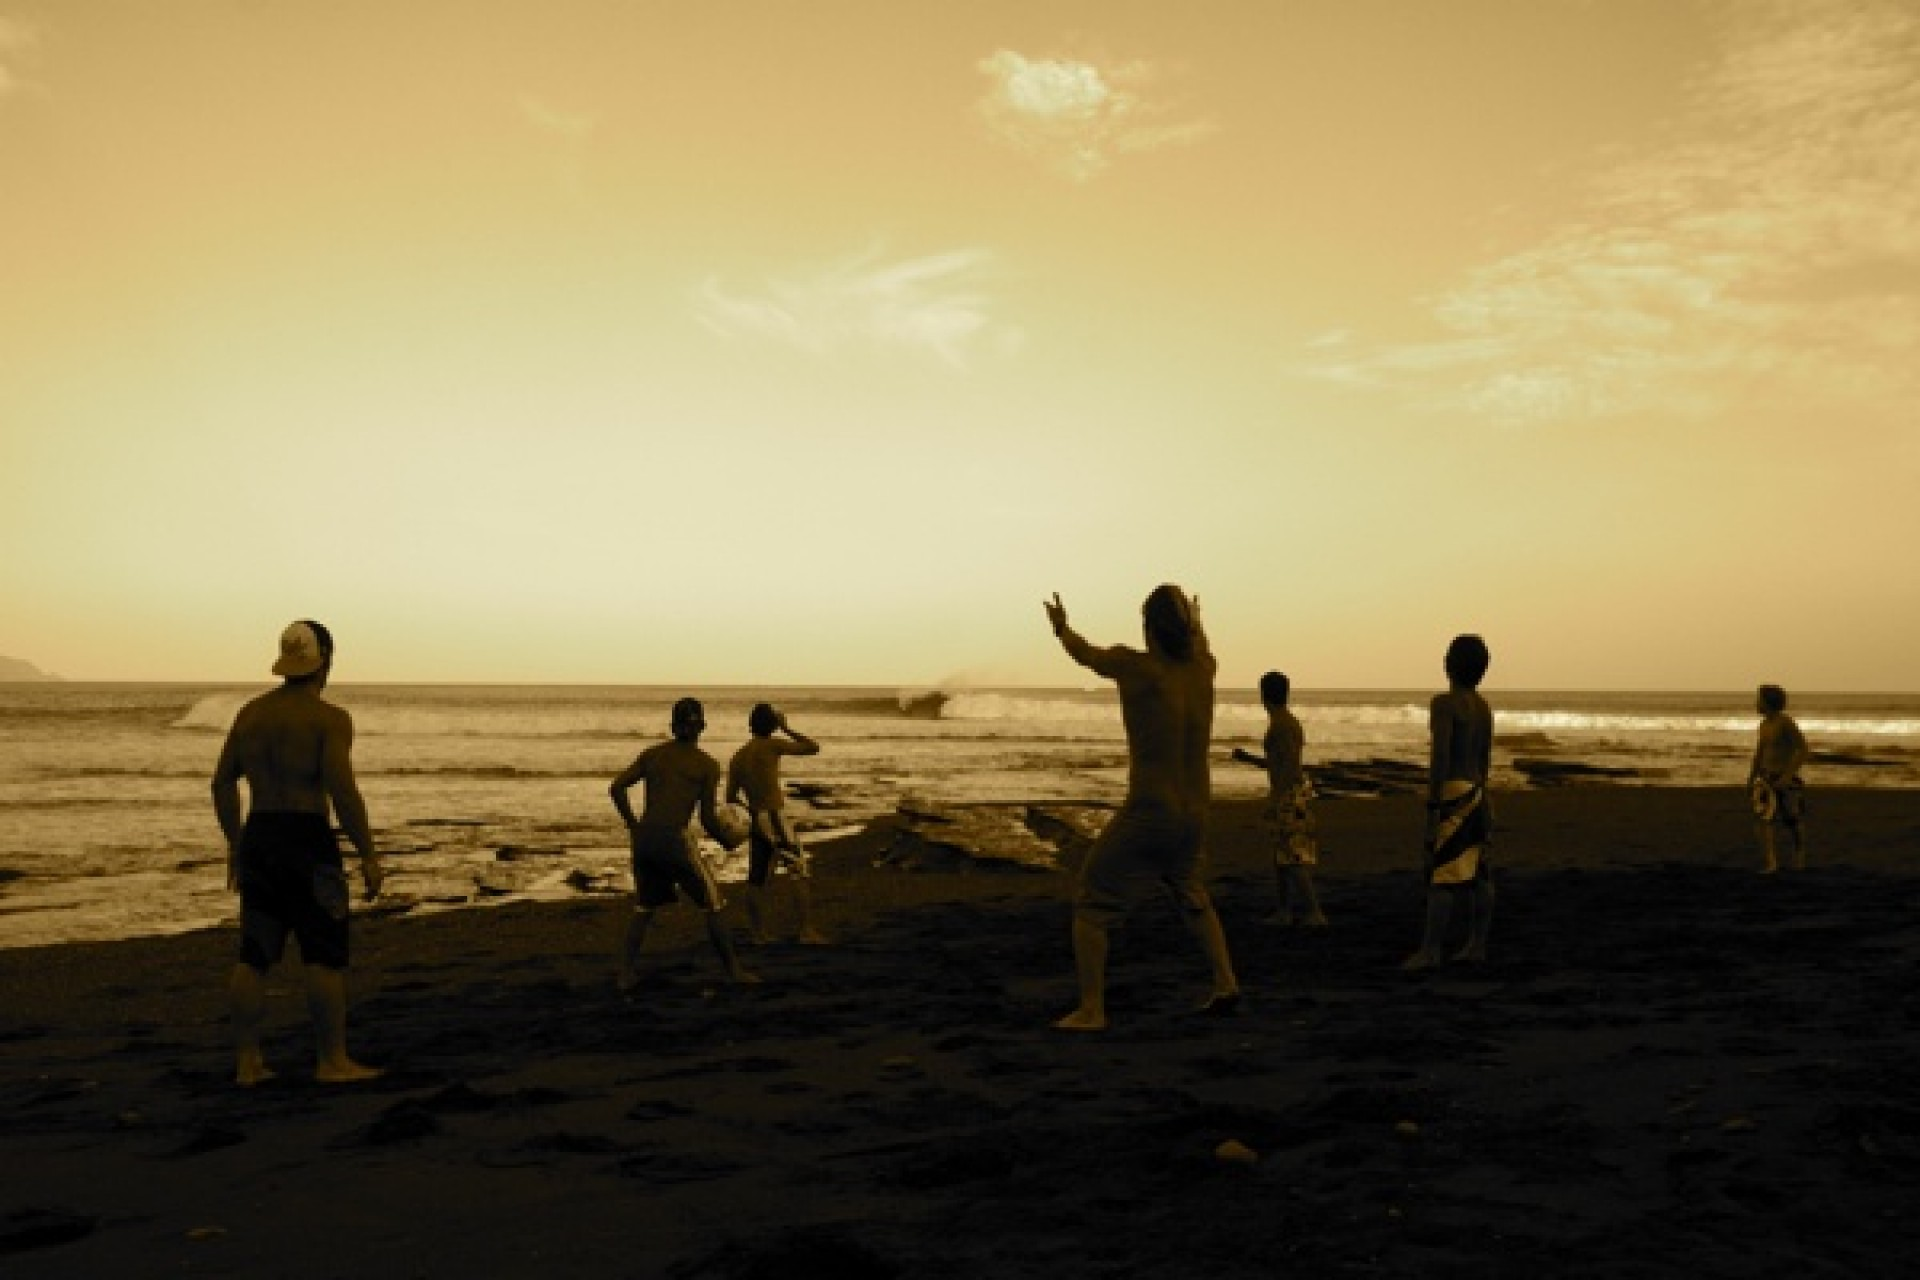 Susu Nasser's photo of Playa Venao